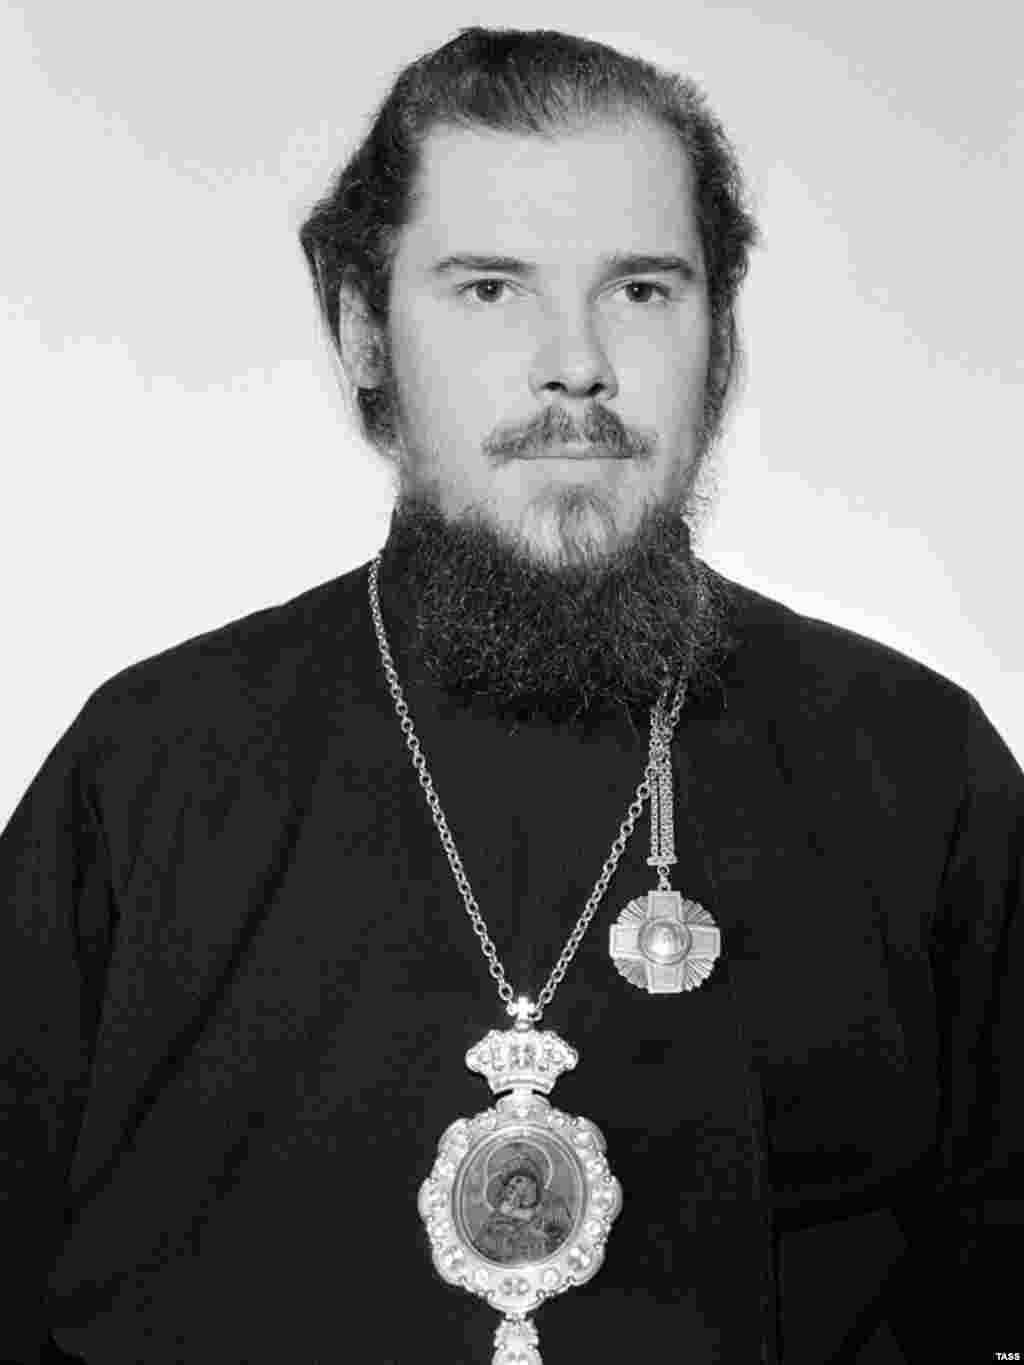 Patriarch Aleksy was born as Aleksy Mikhailovich Ridiger in Tallinn on February 23, 1929.